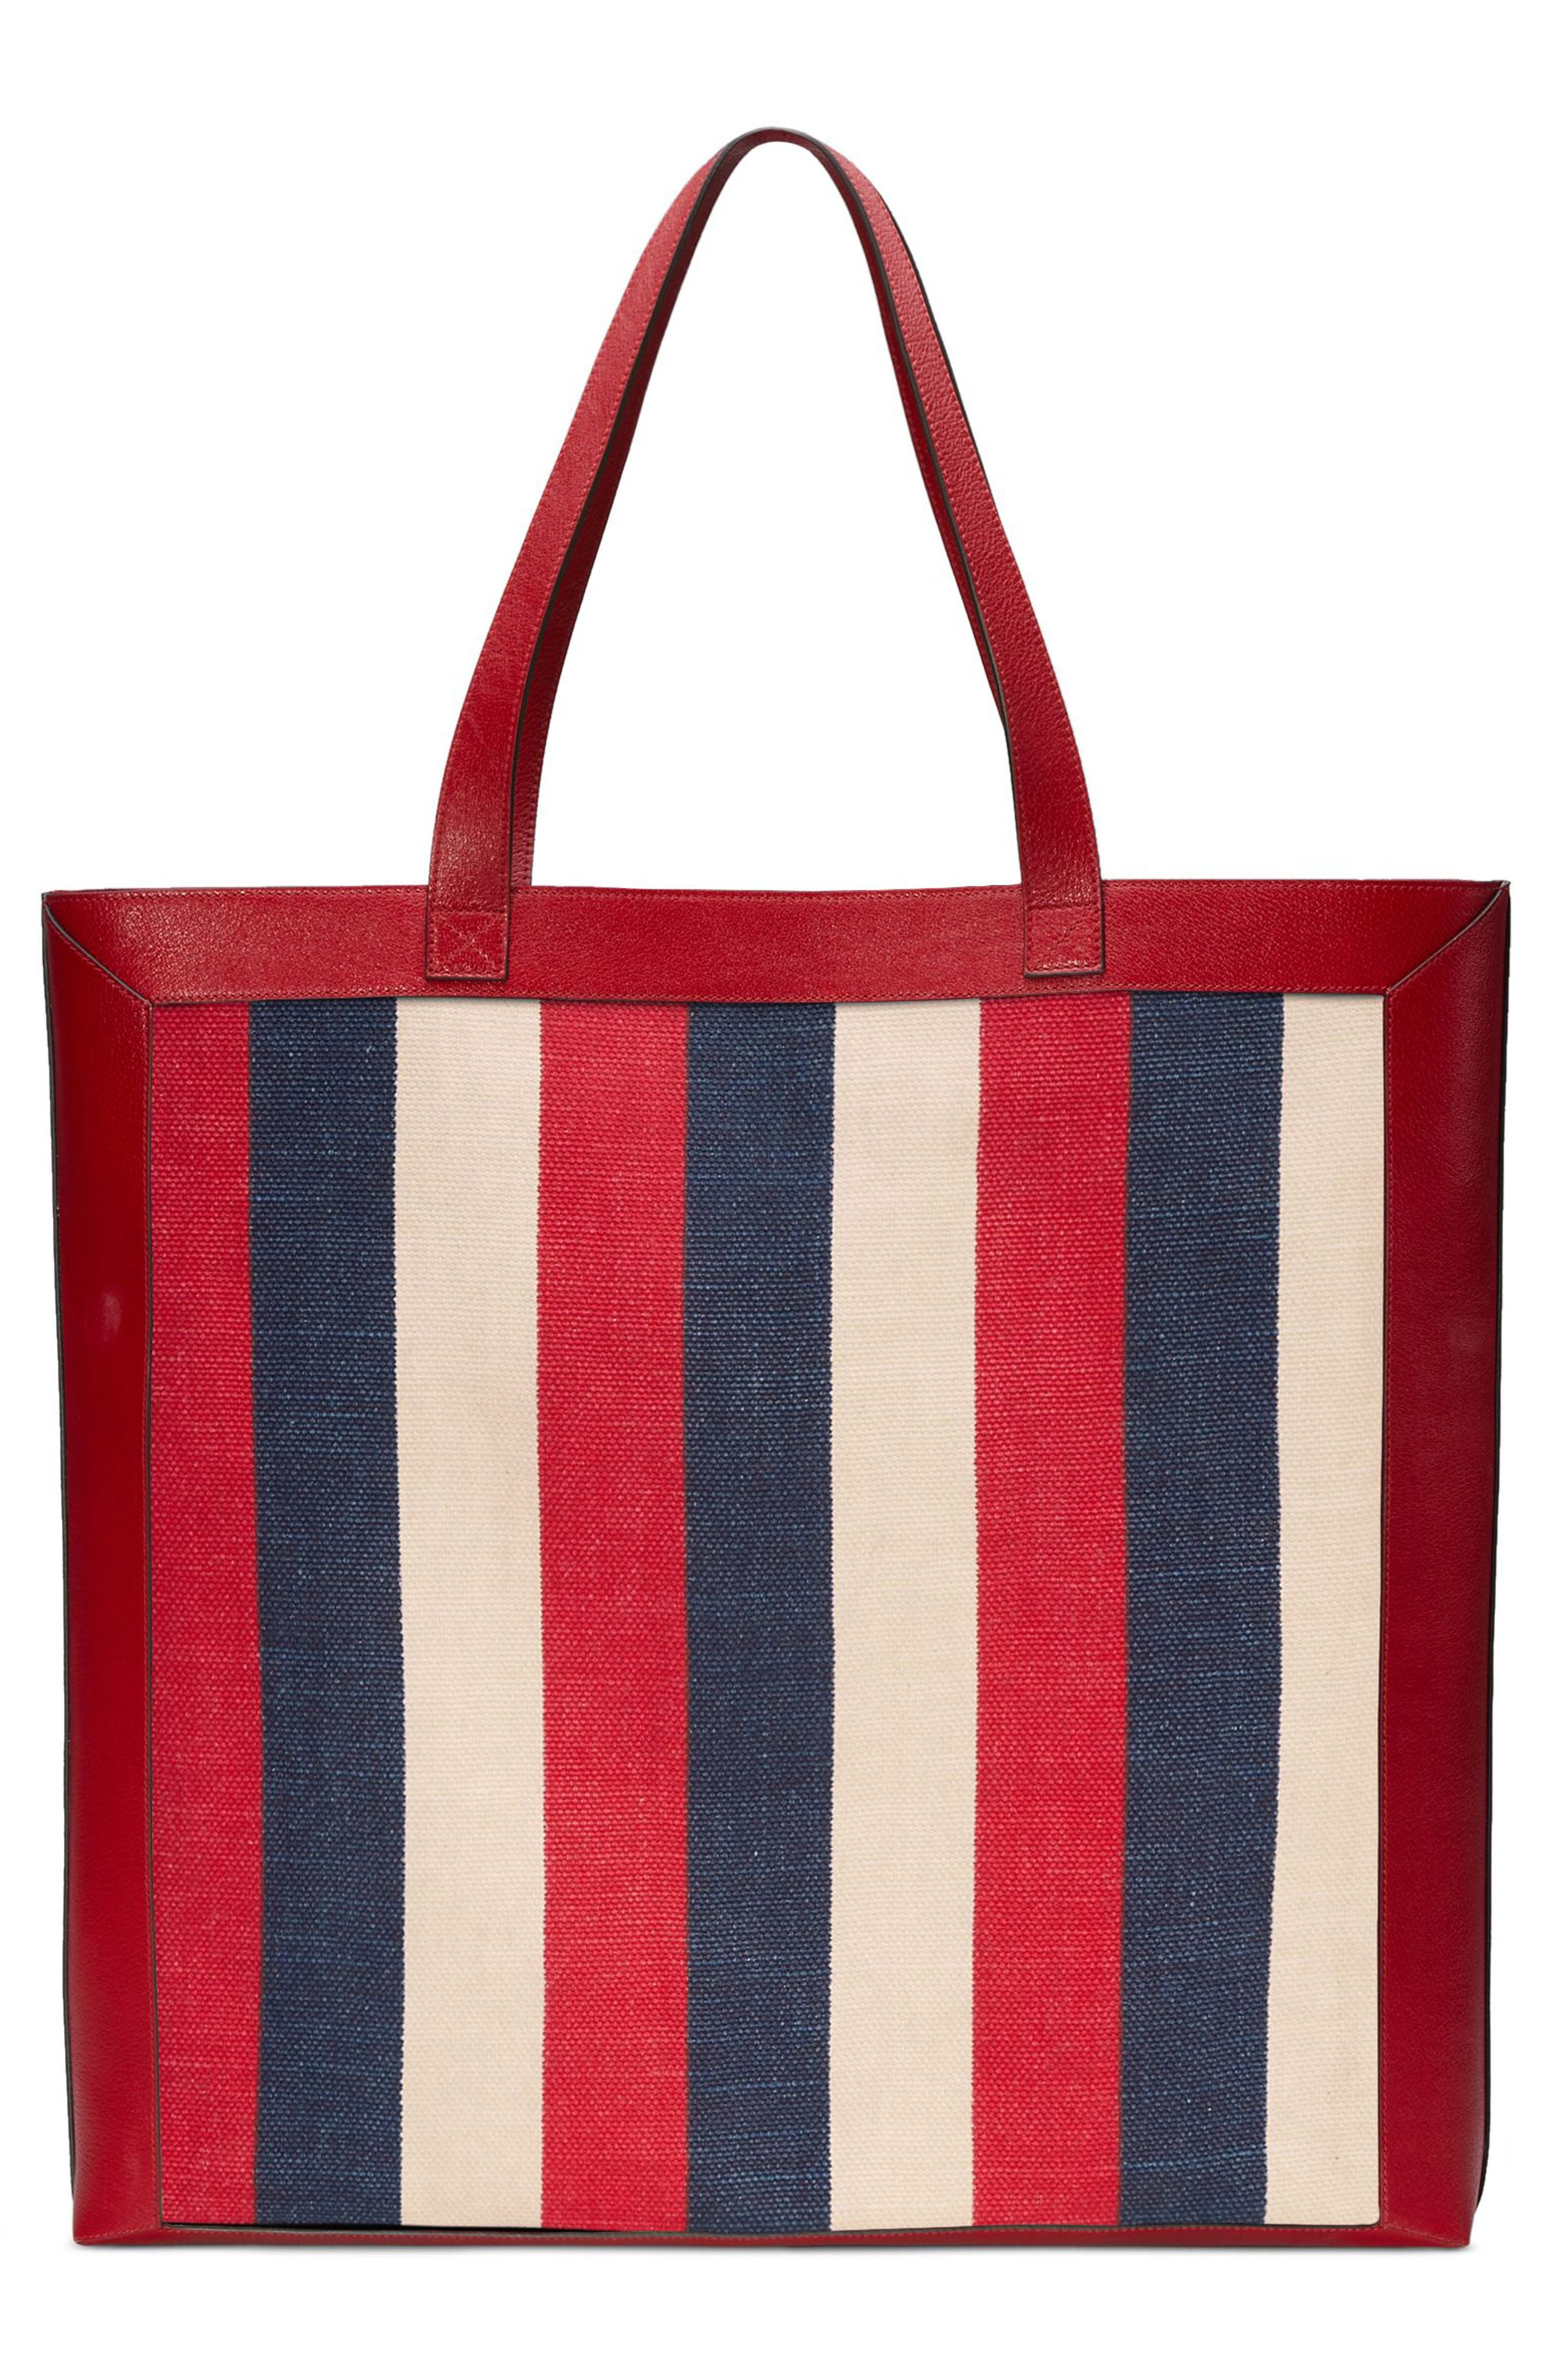 Stripe Canvas Tote,                             Alternate thumbnail 2, color,                             HIBISCUS RED/ WHITE/ BLUE